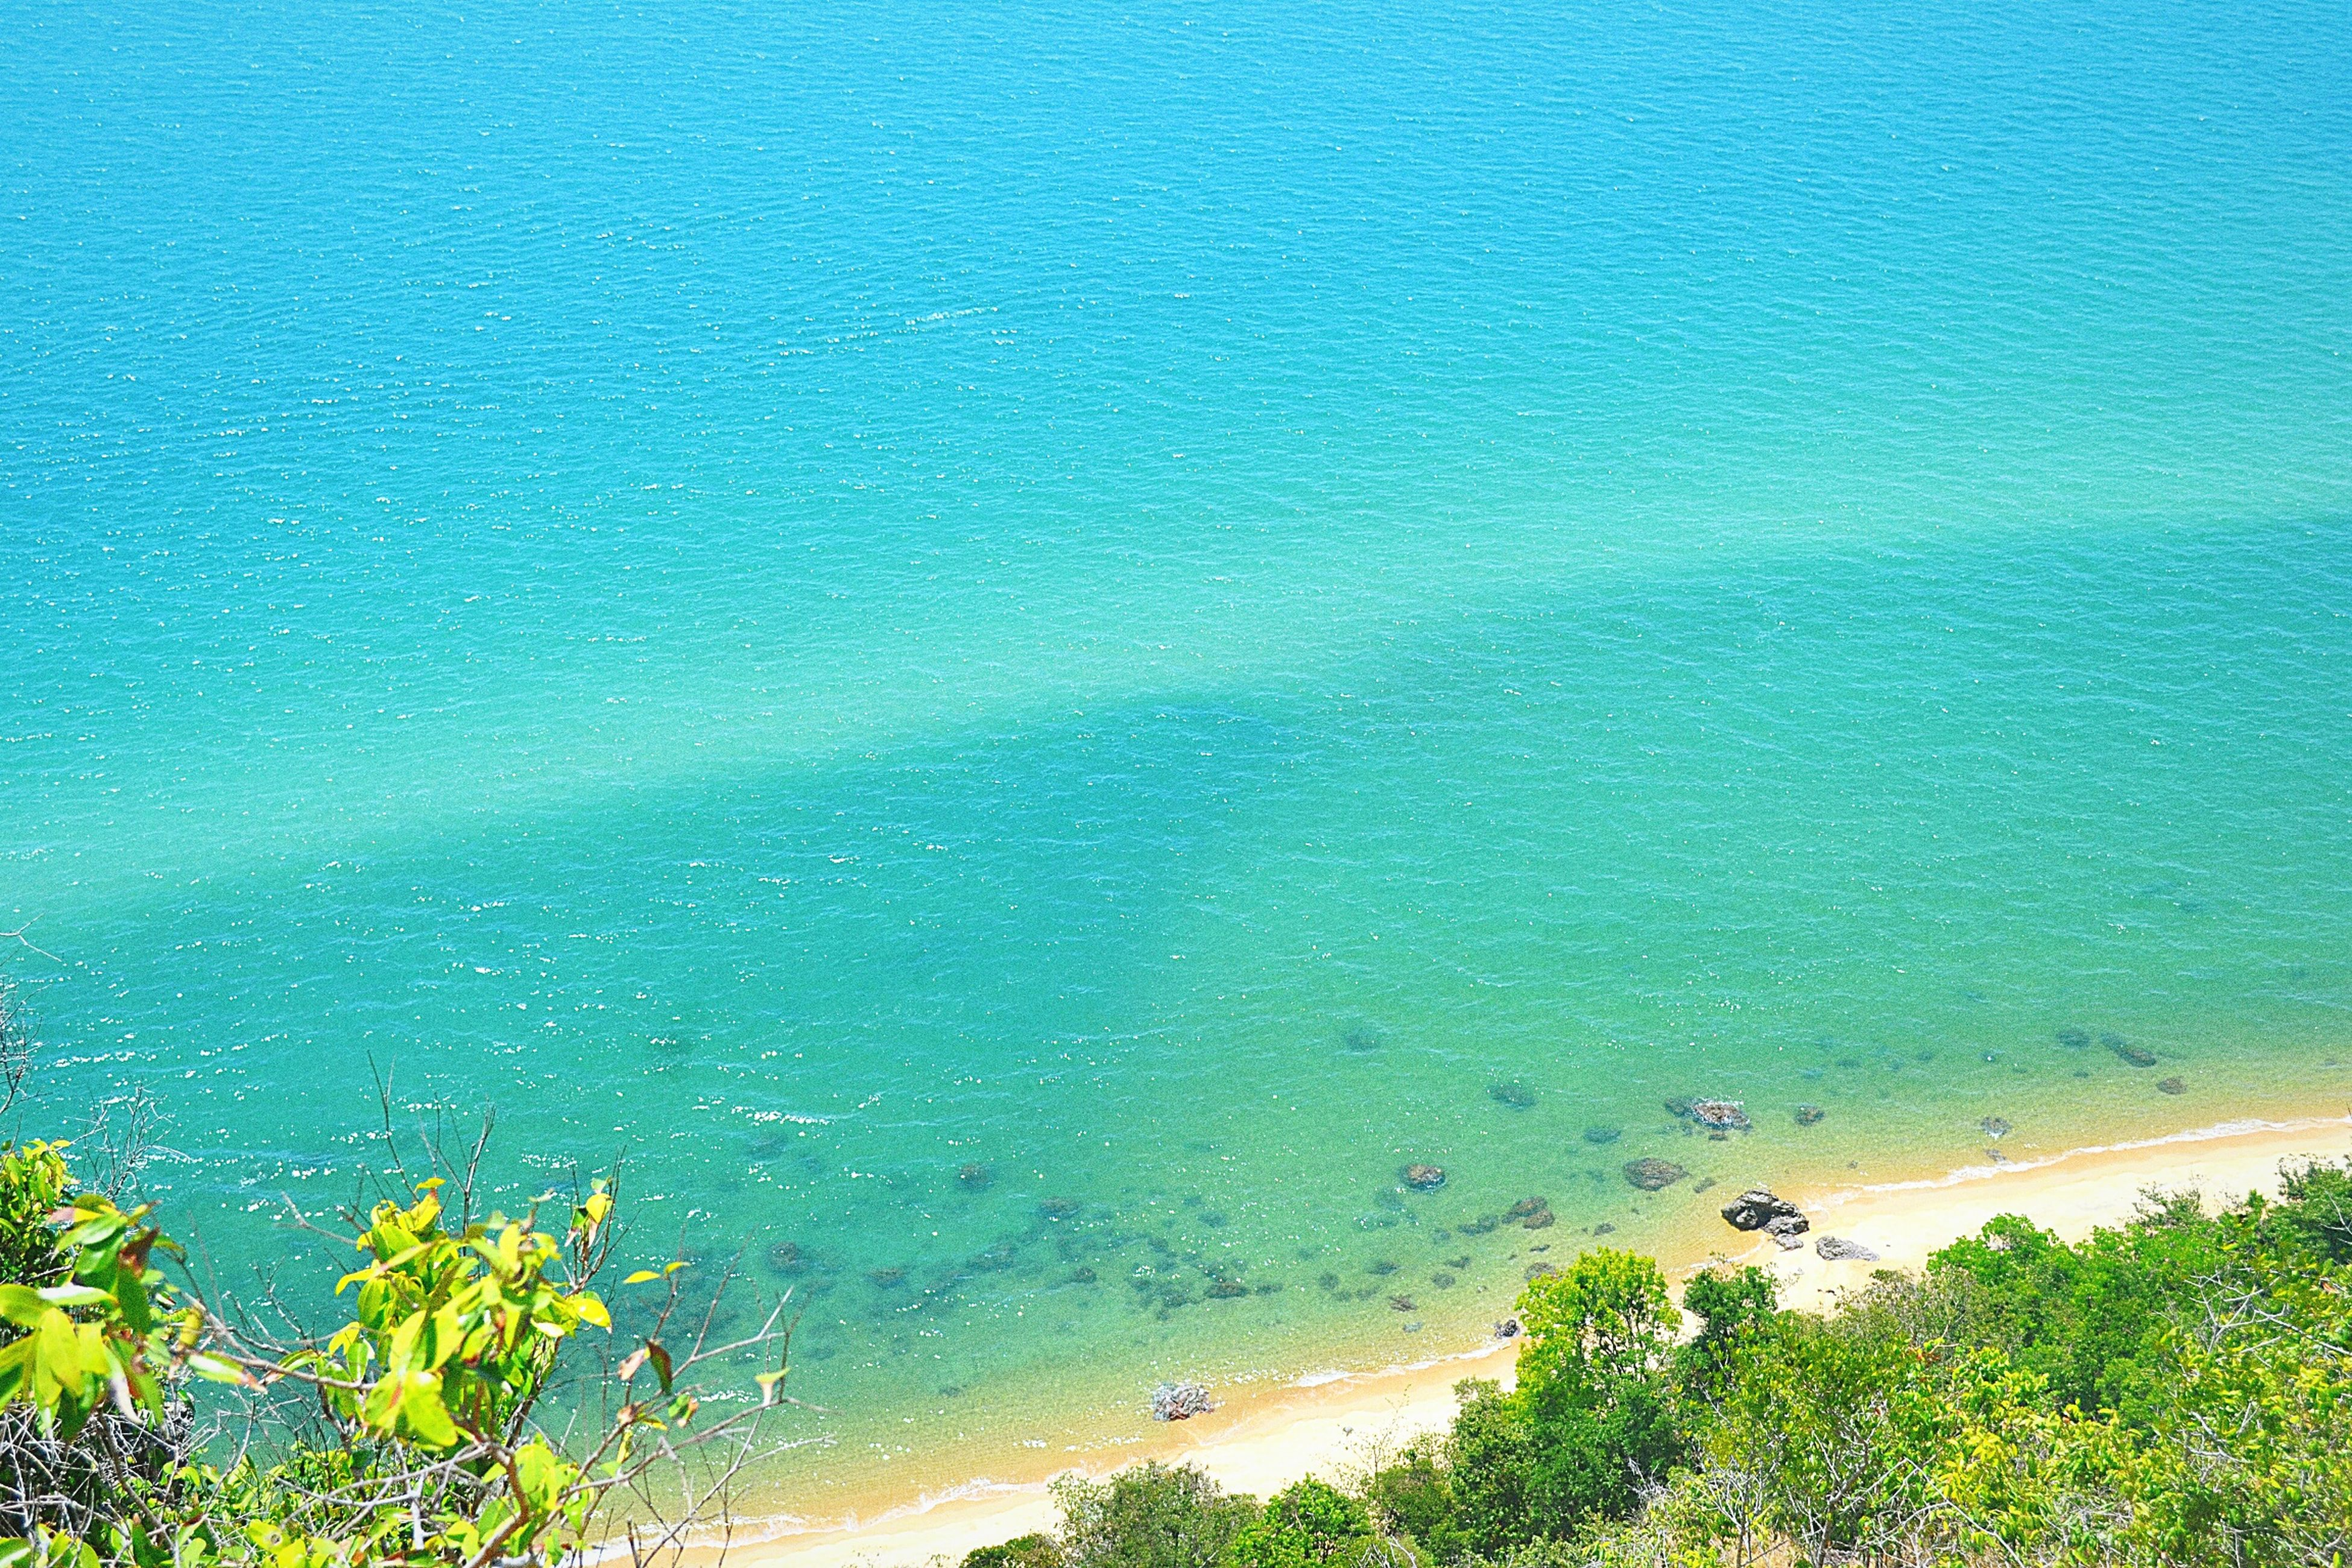 sea, water, blue, beach, tranquility, tranquil scene, beauty in nature, horizon over water, scenics, nature, shore, sand, coastline, idyllic, tree, high angle view, outdoors, growth, plant, day